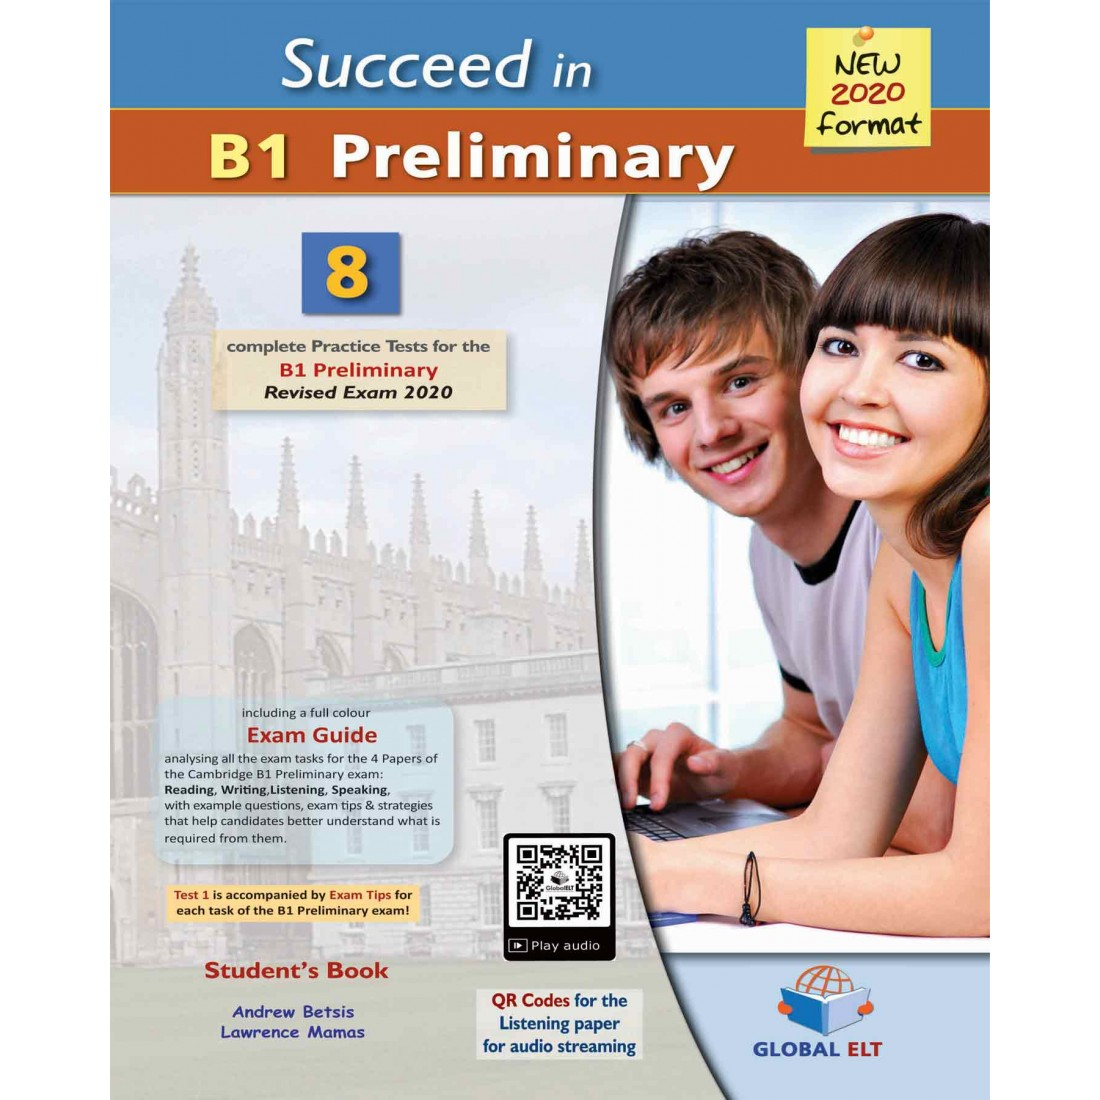 Succeed In Cambridge English B1 Preliminary 8 Practice Tests For The Revised Exam From 2020 Audio Cds Globalelt Co Uk